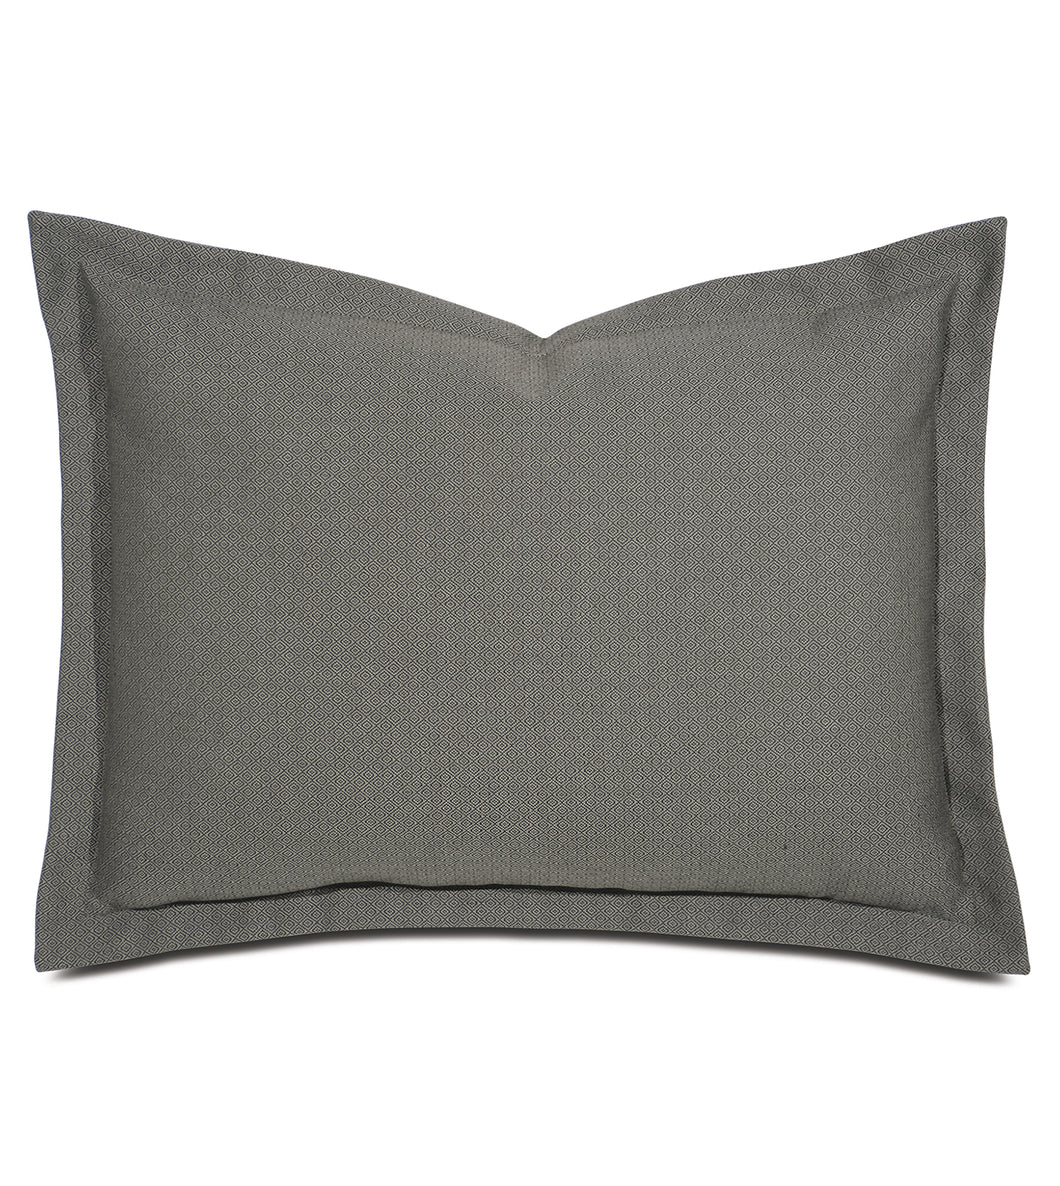 Gray Mountain Resort Ethnic Geometric Standard Sham Self Flange 20